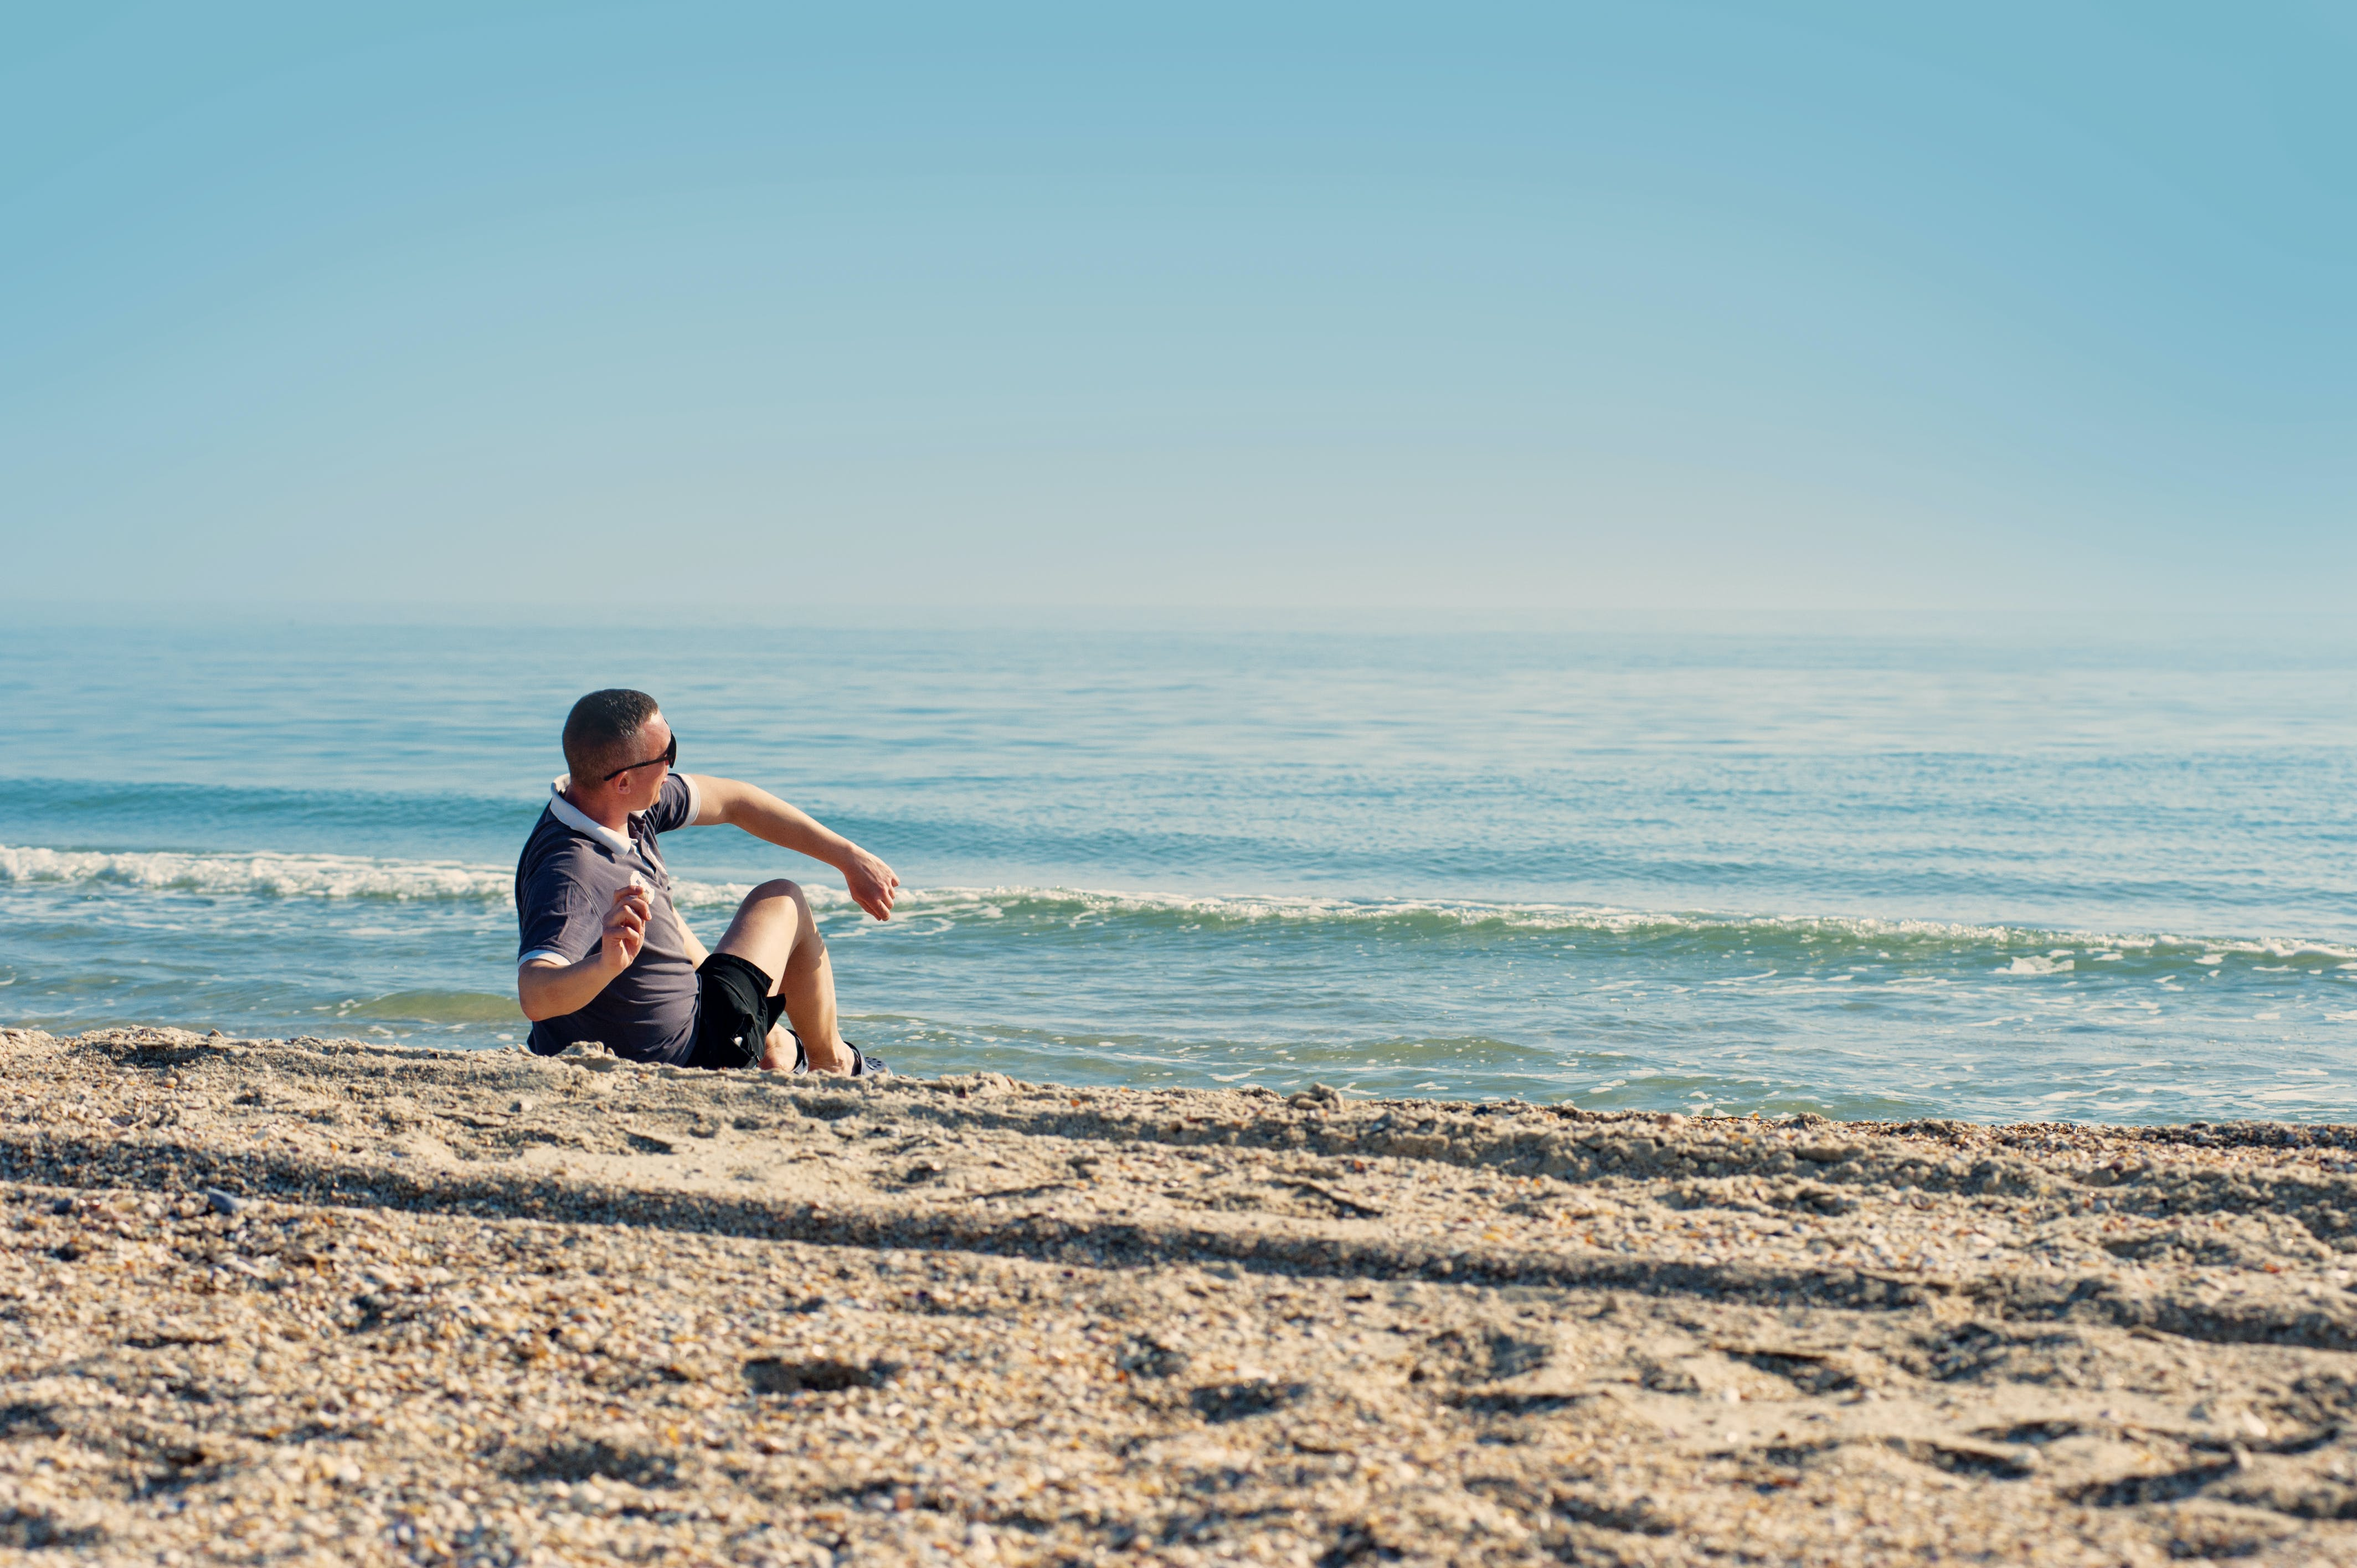 Man Sitting on Seashore